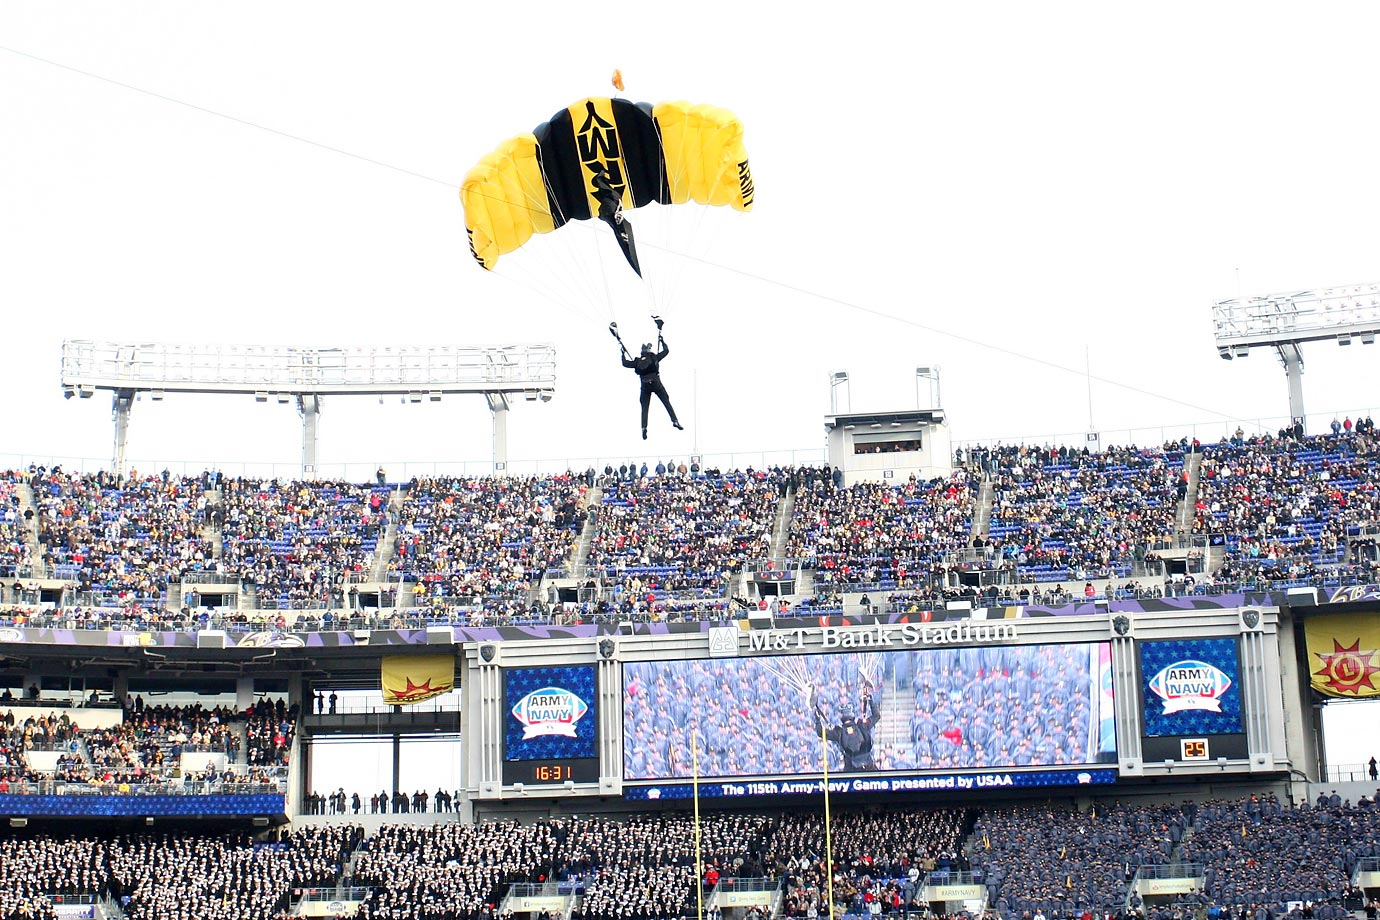 An Army parachute team member enters M&T Bank Stadium prior to the start of the 115th Army-Navy football game.